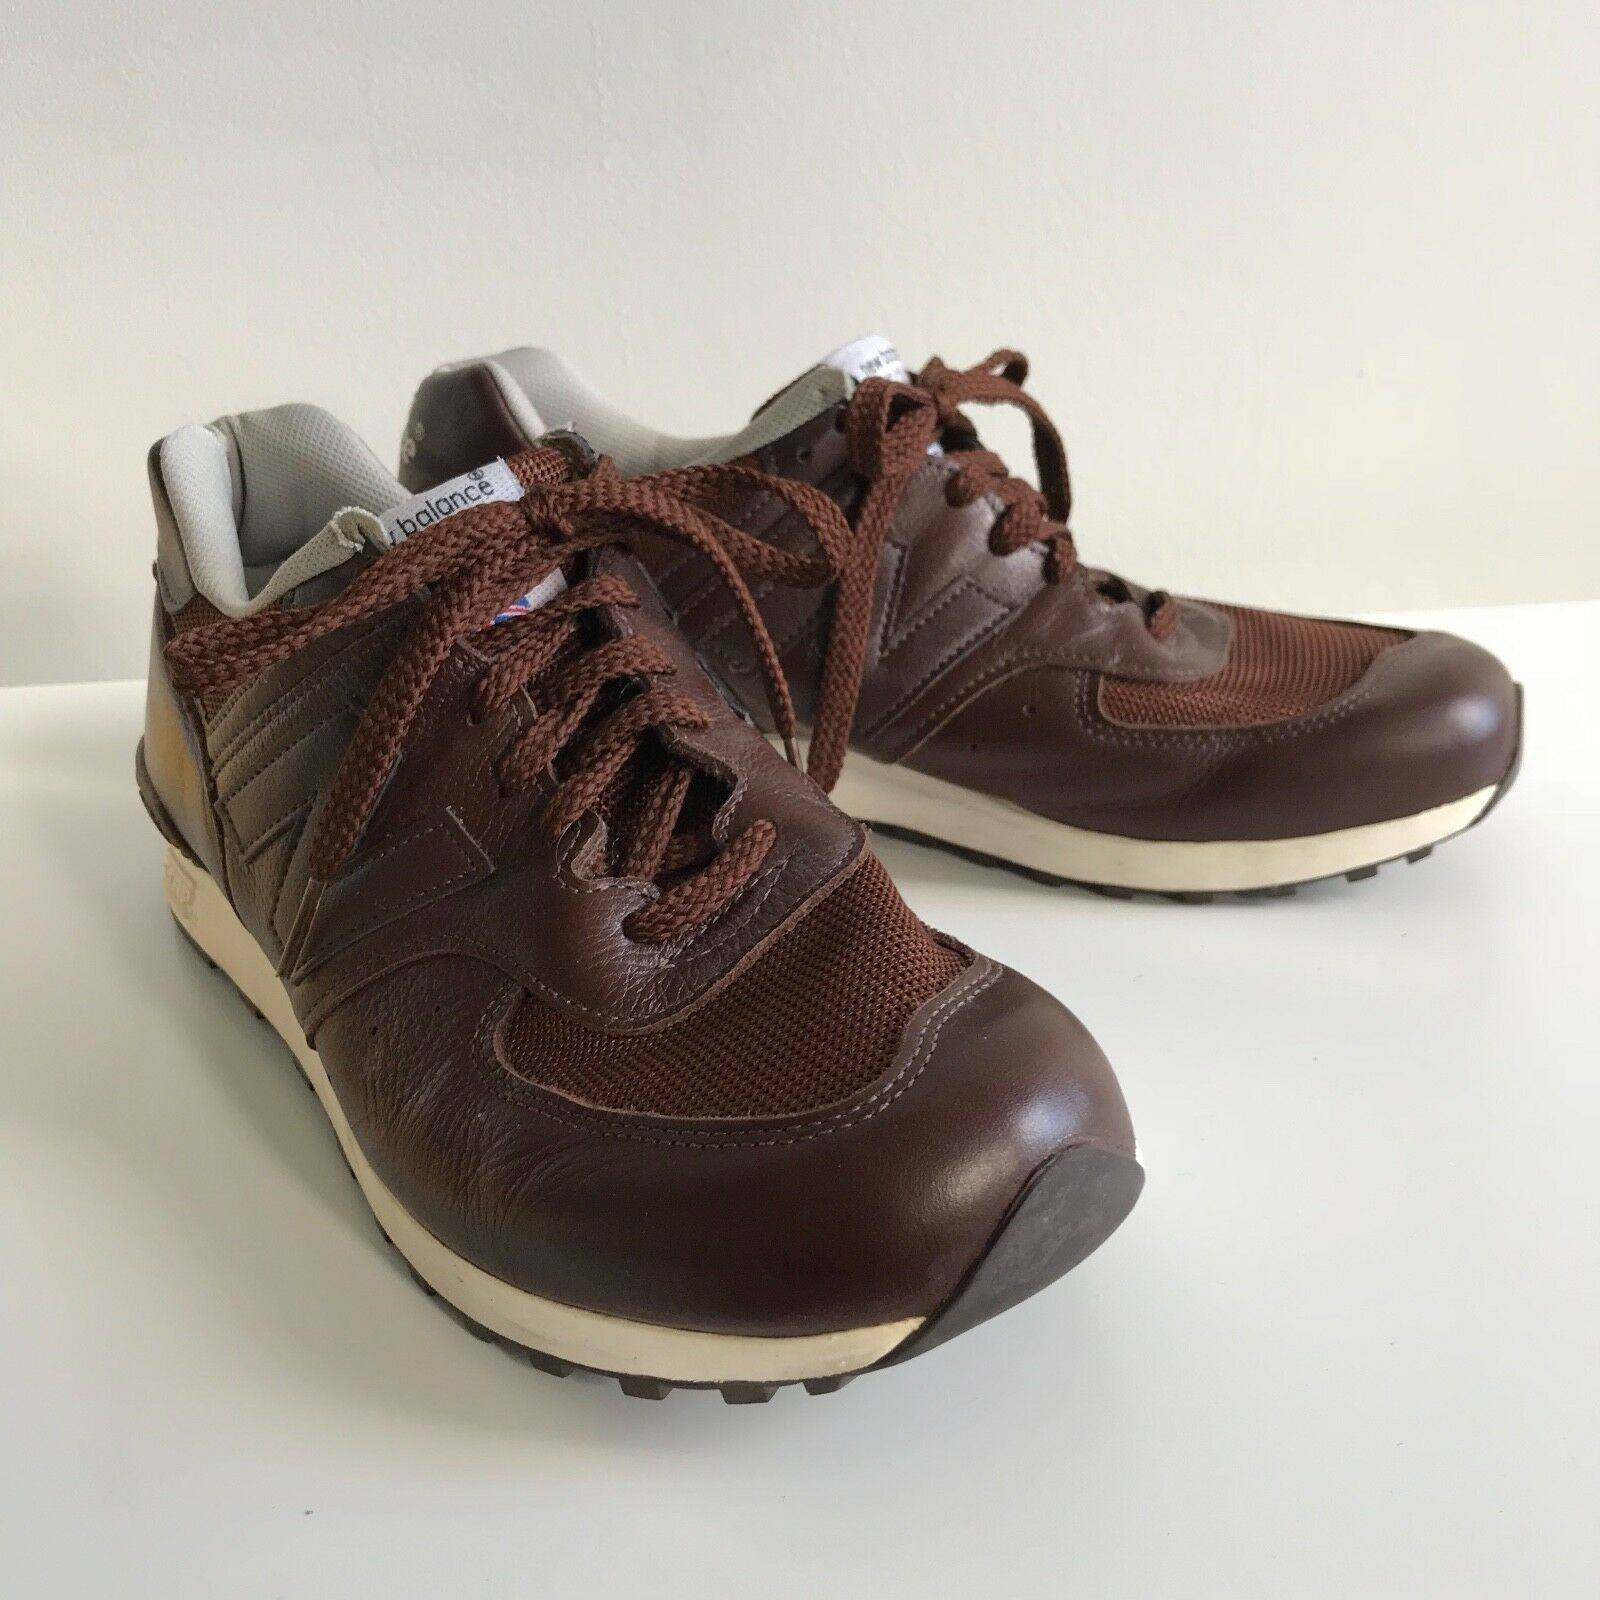 5eada01ce616d NEW BALANCE 576 Made in England Leather Uppers - Discreet Logo - SIZE US 9